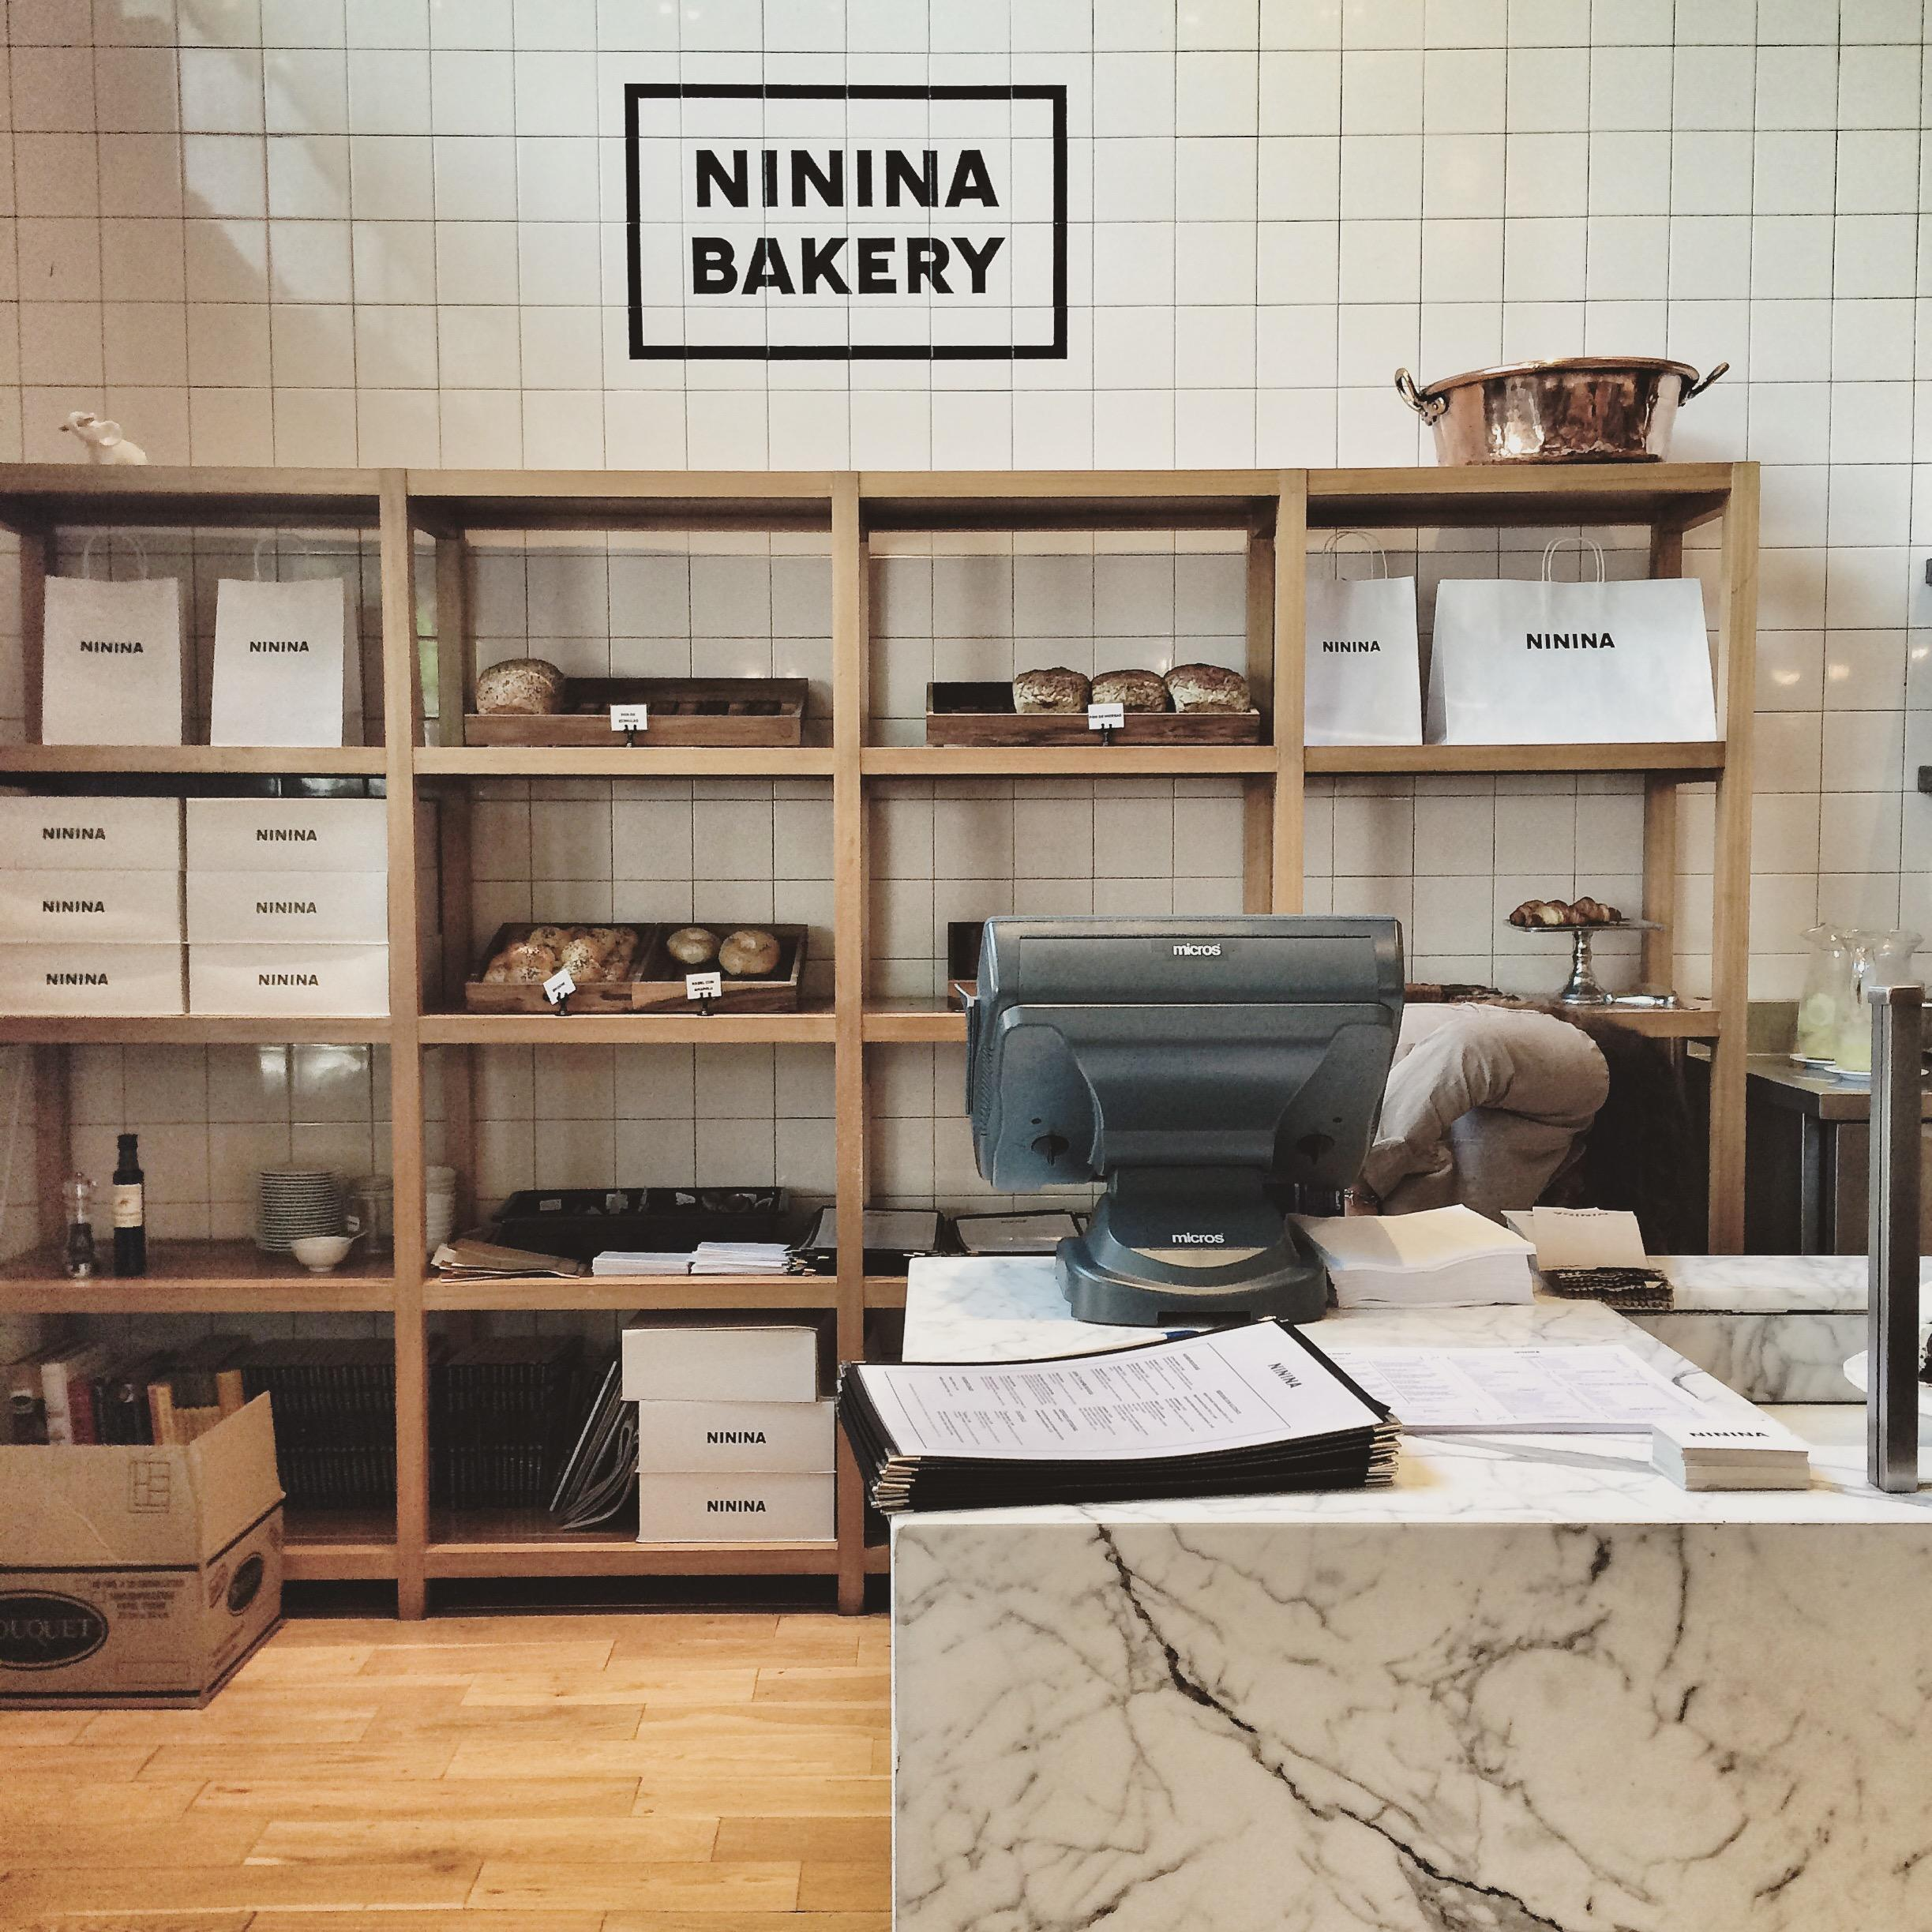 Interior-Love! #buenosaires #bakery